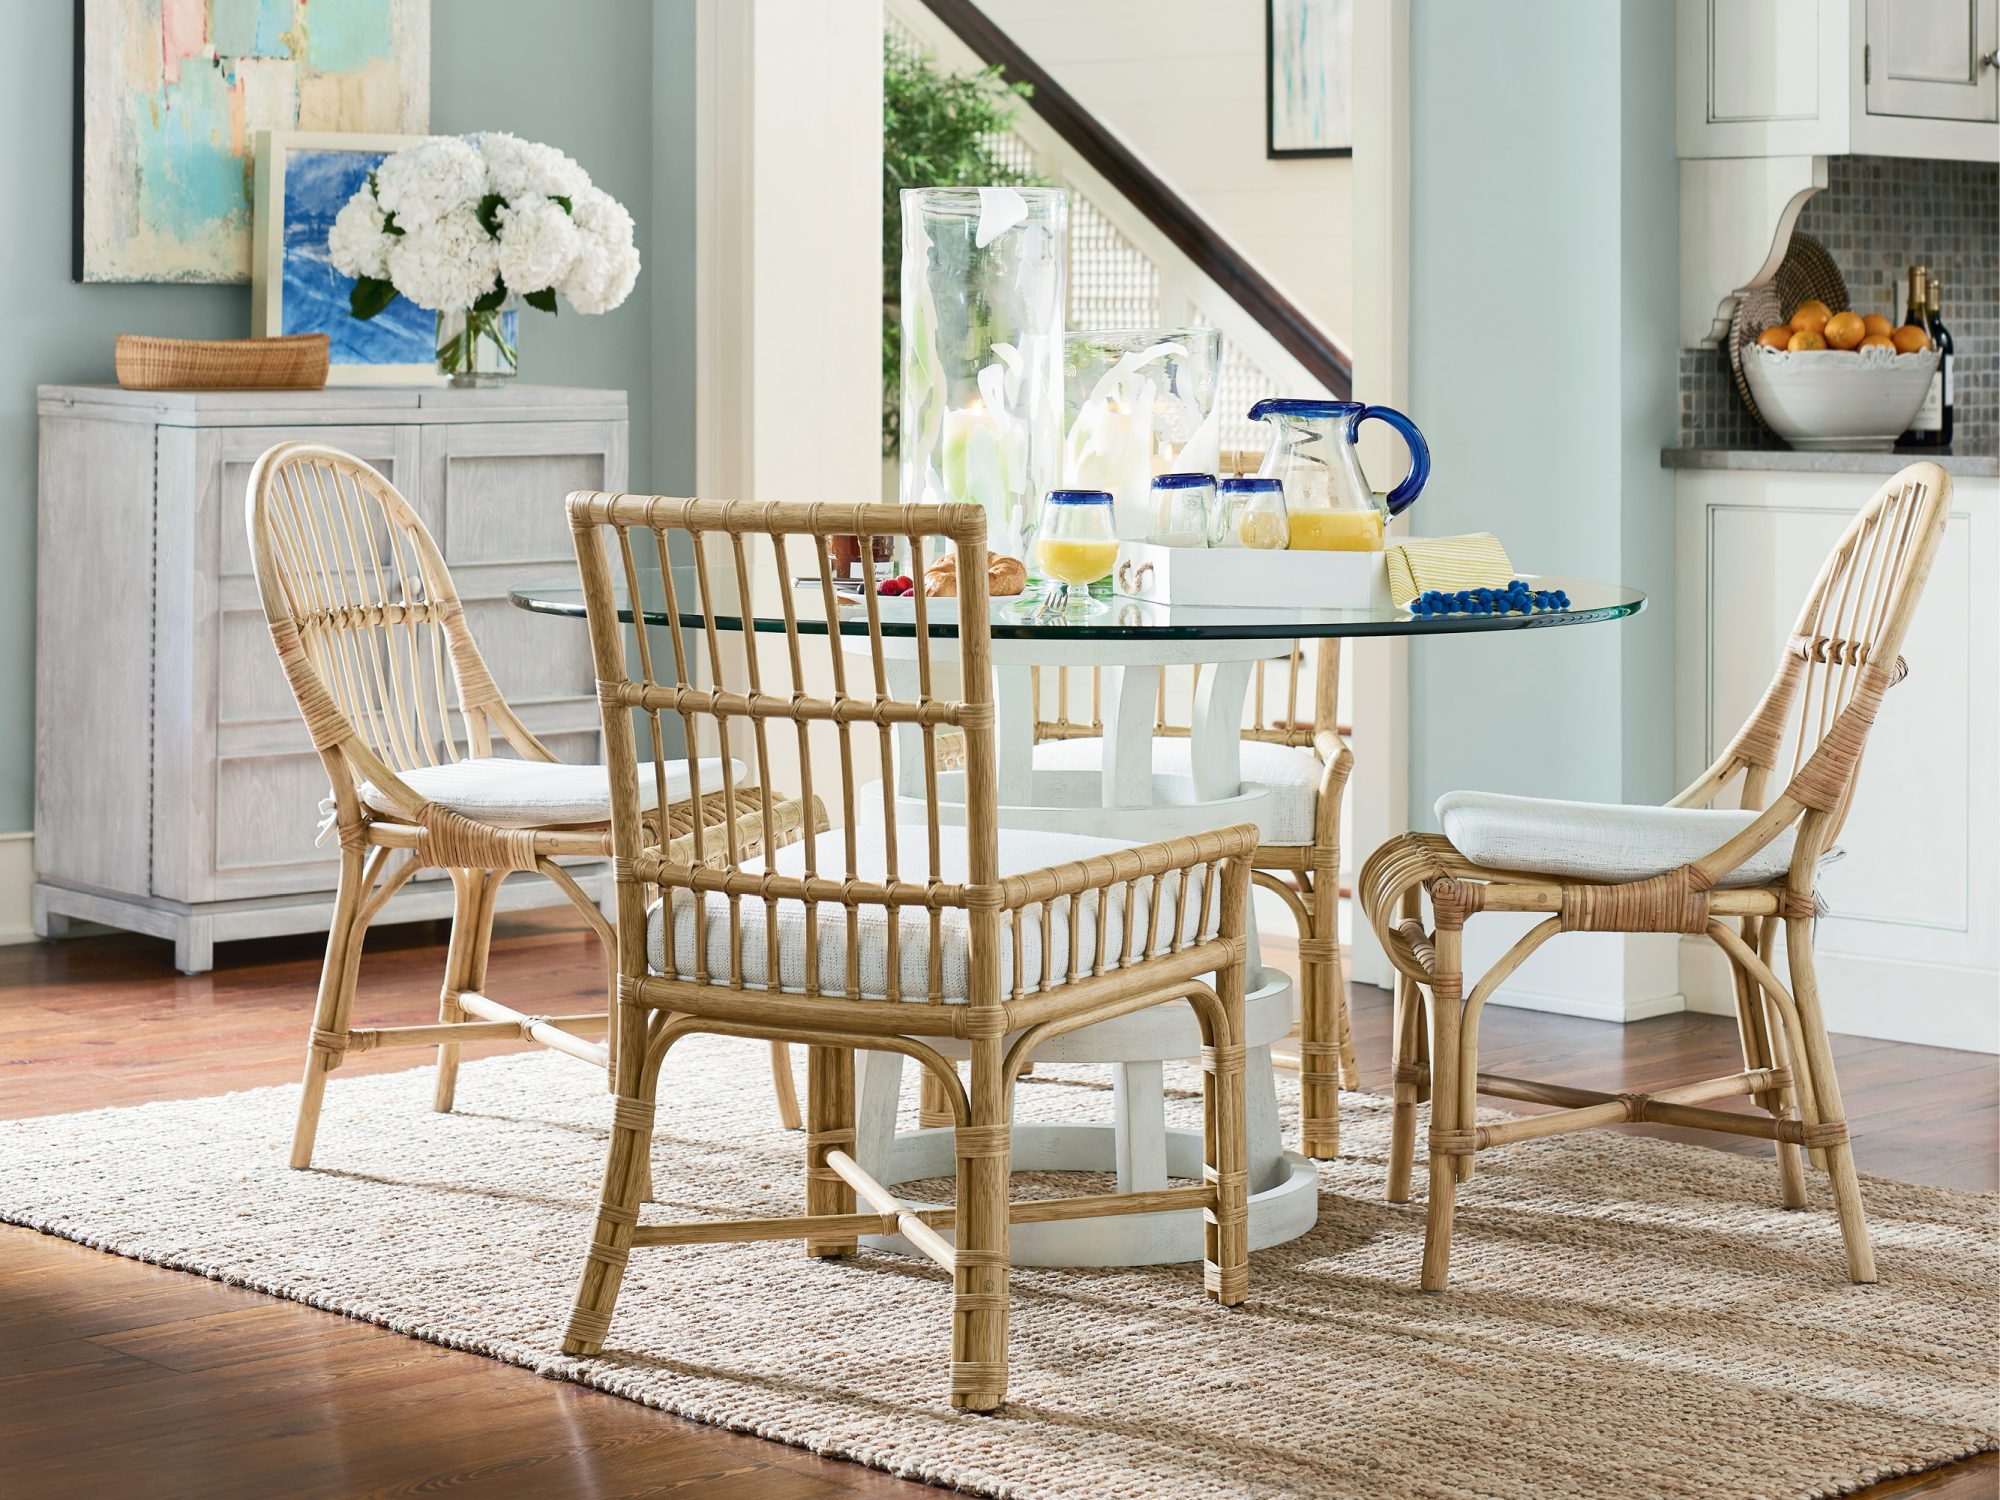 Rattan and Bamboo Accent Chairs and Glass-top Breakfast Nook Table from the Coastal Living Furniture Collection